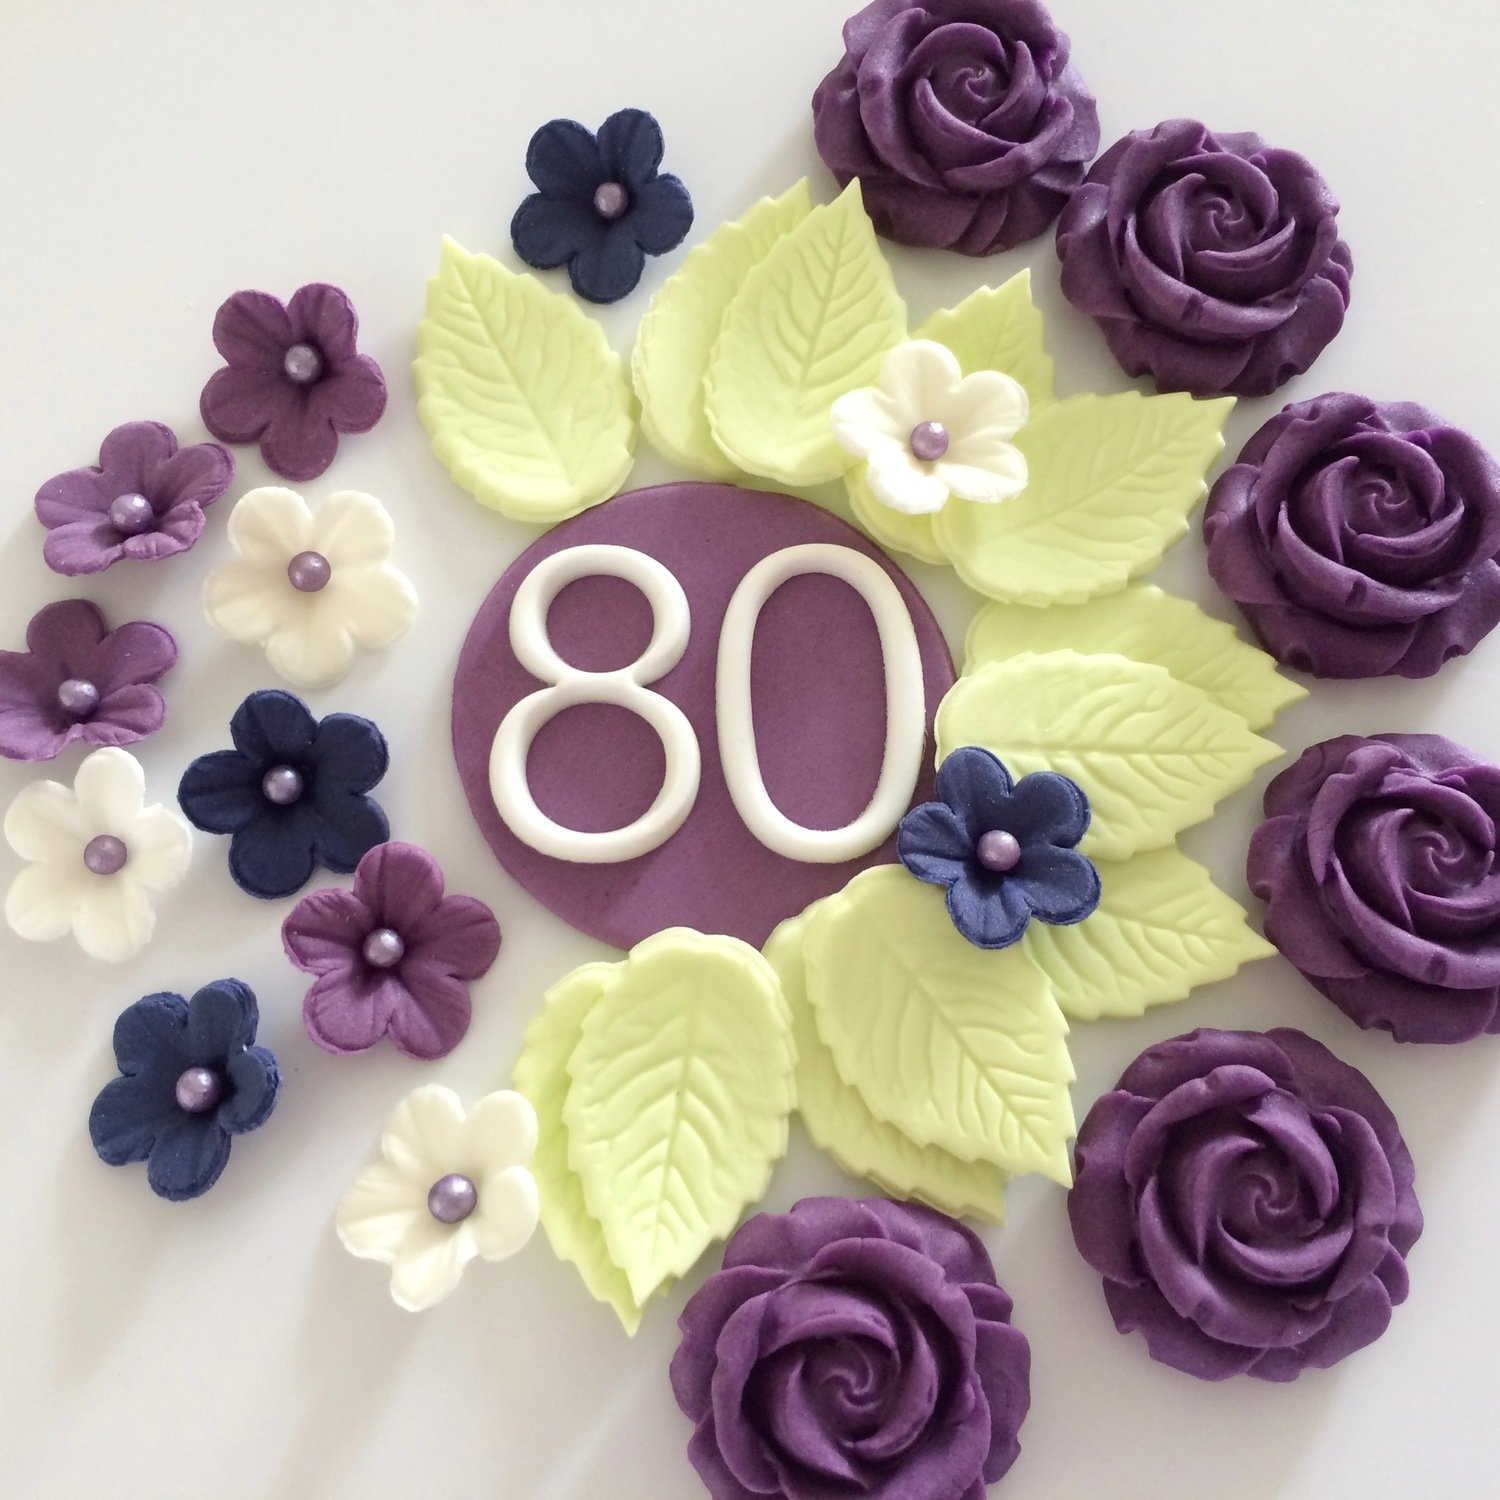 Stupendous 80Th Birthday Cake Decorations Edible Sugar Flowers Funny Birthday Cards Online Alyptdamsfinfo